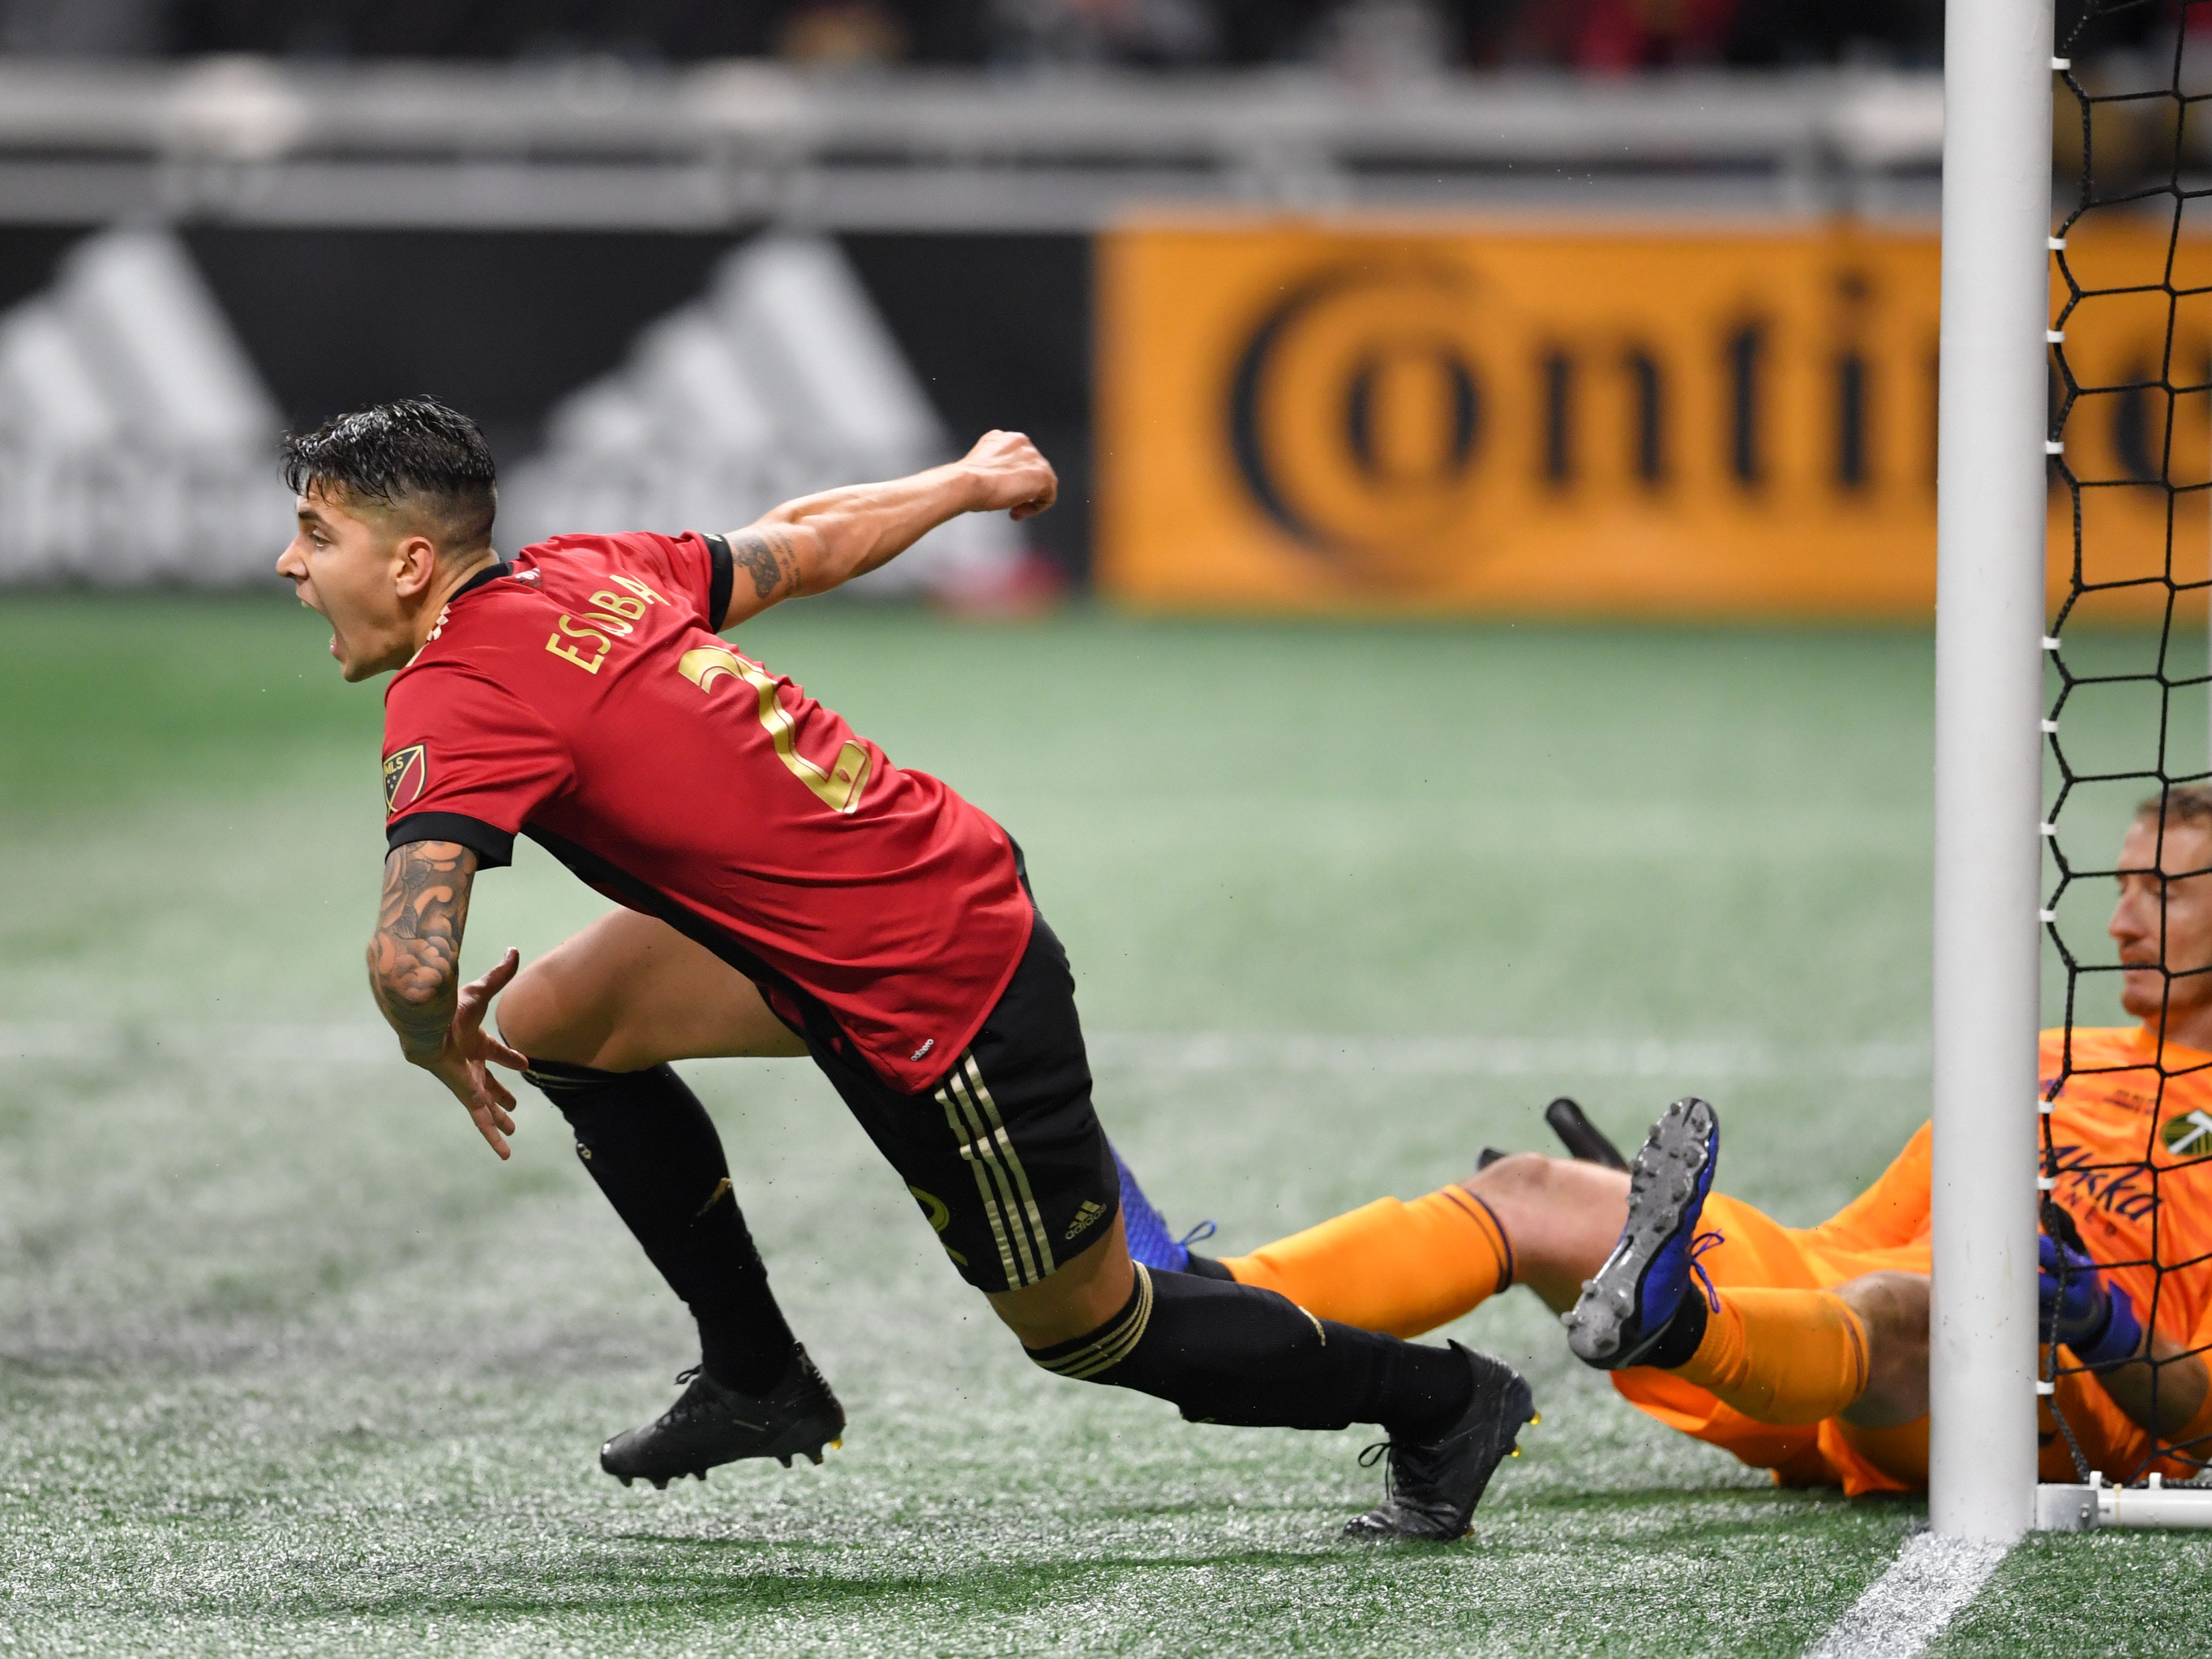 Atlanta United defender Franco Escobar celebrates after scoring past Portland Timbers goalkeeper Jeff Attinella (1) in the second half in the 2018 MLS Cup.